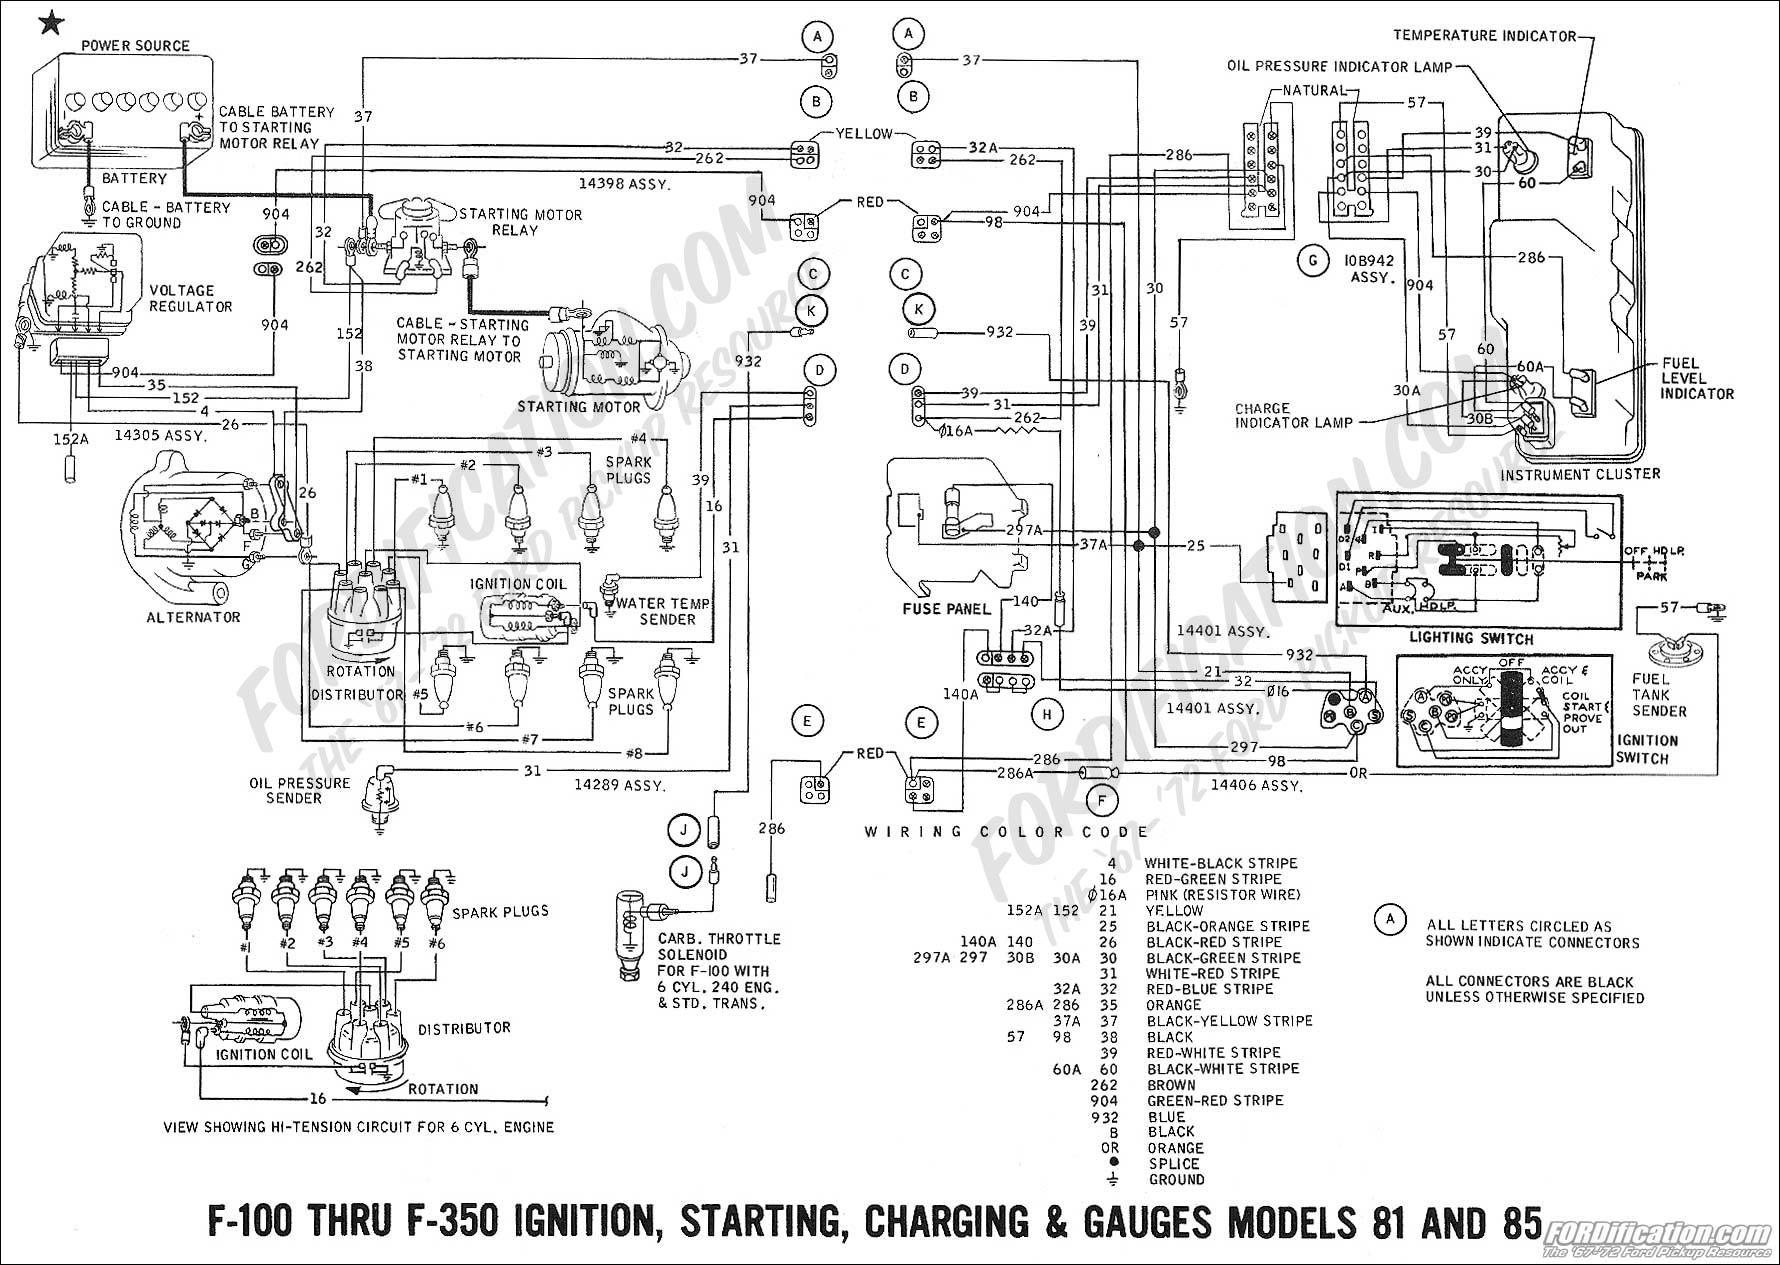 Vw Trike Wiring Diagrams Moreover 65 Mustang Harness Diagram F250 Libraries 1966 Ford Todaysford F500 F100